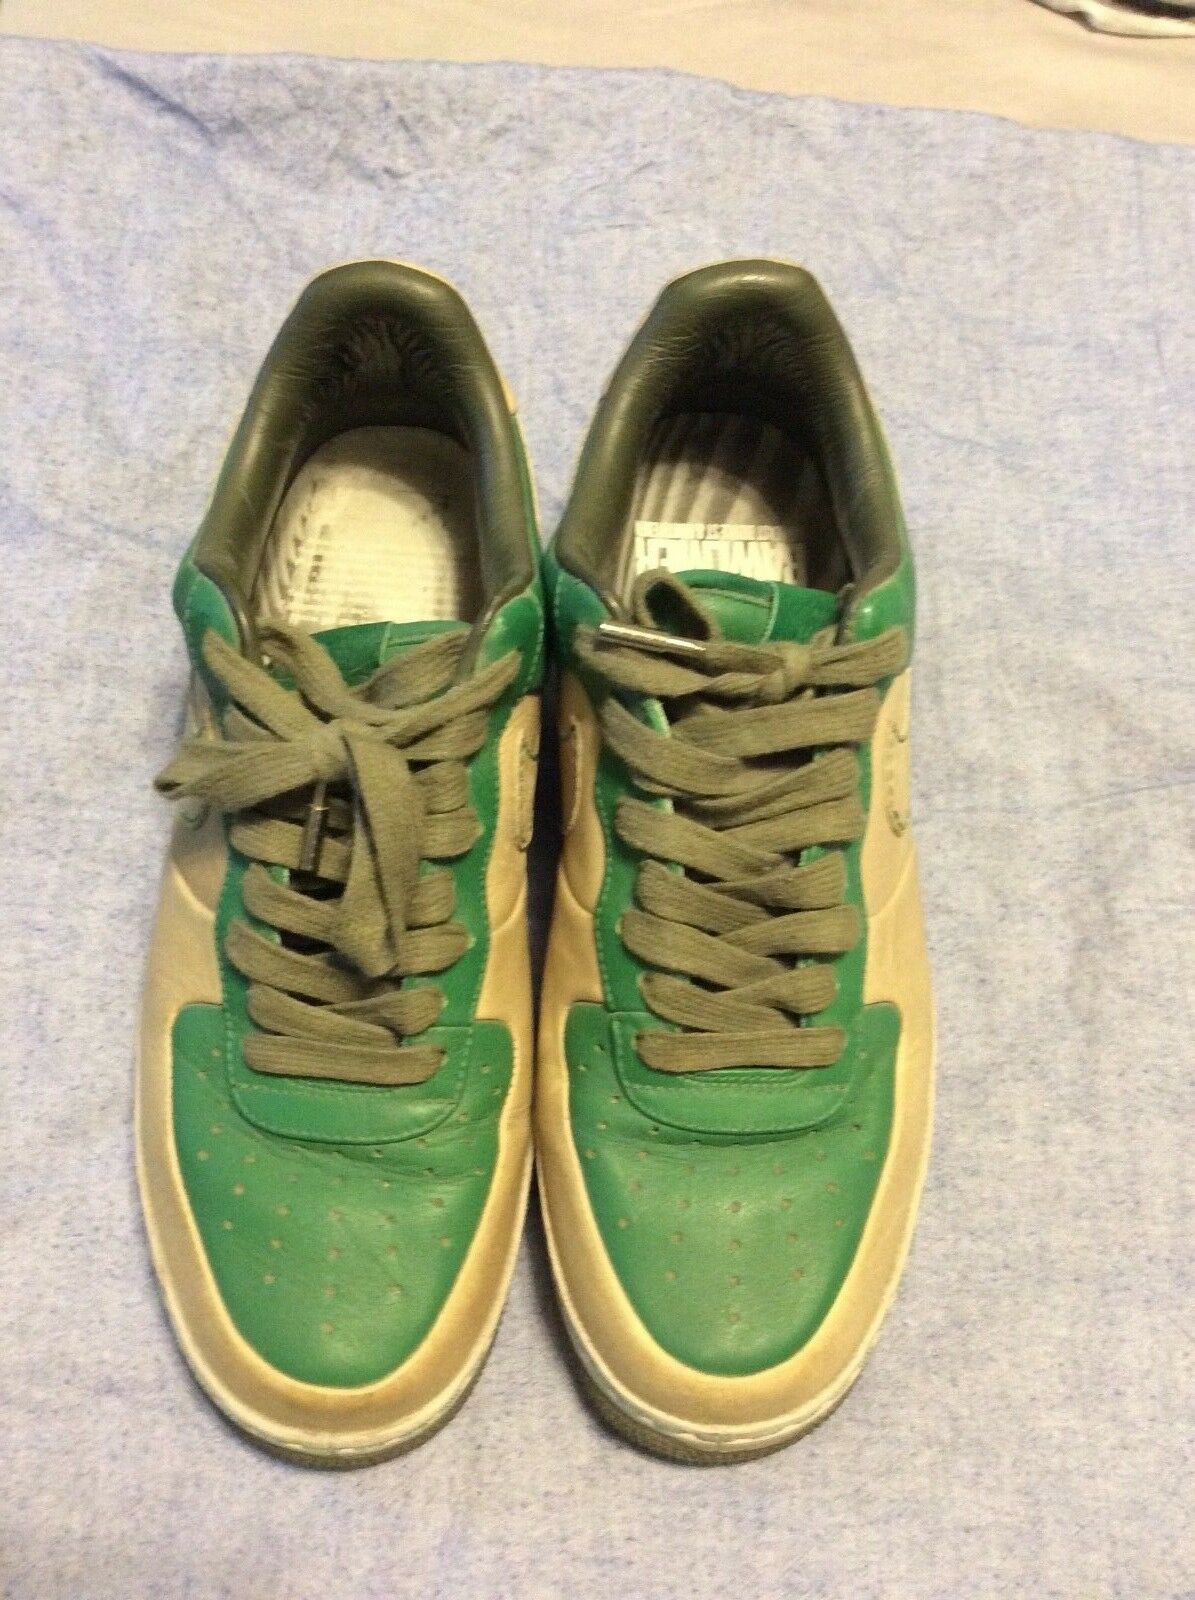 Nike Sneakers Limited Edition Green & Beige Leather Size 9. PREOWNED